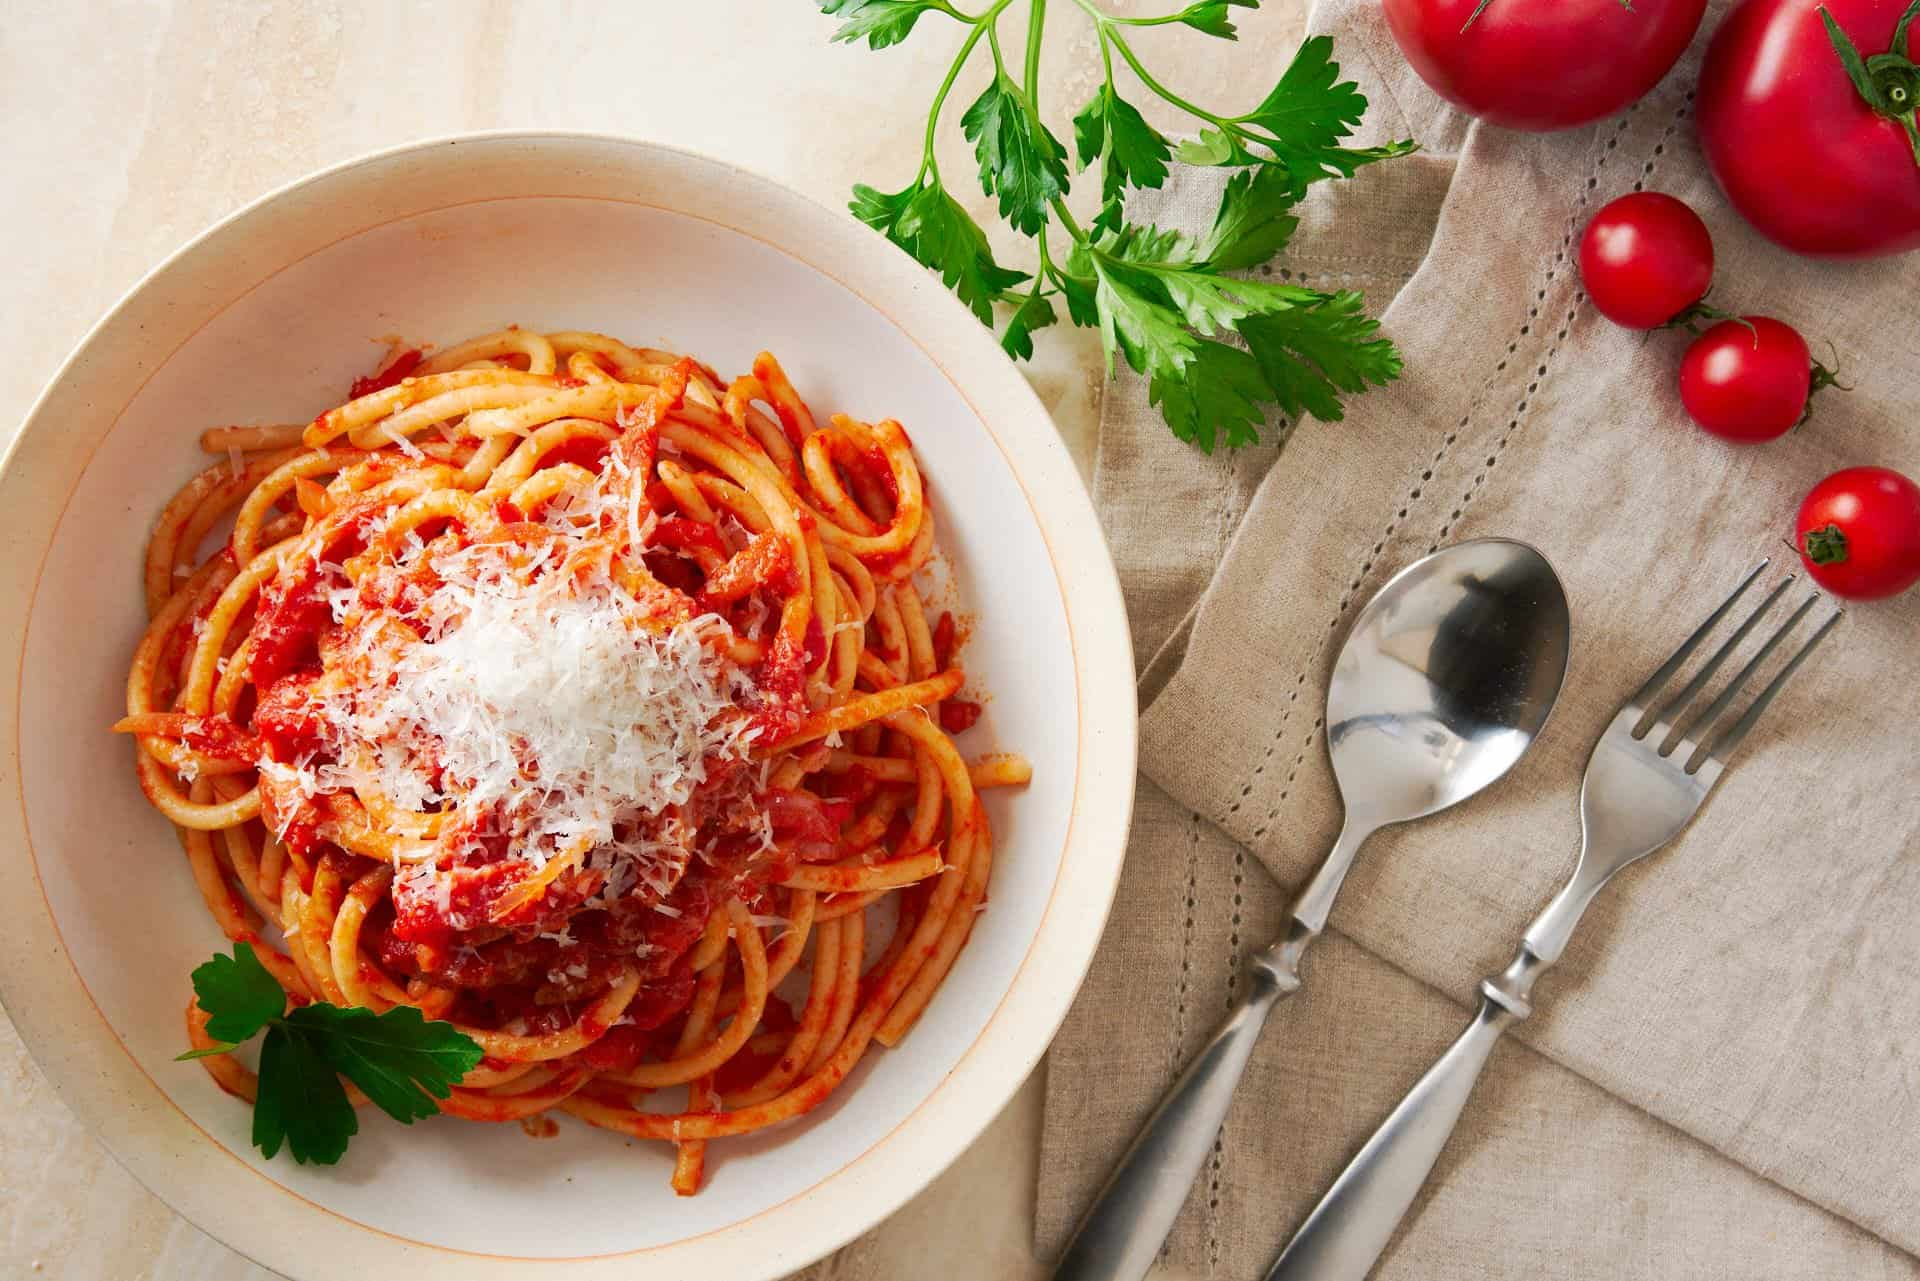 With Guanciale and Pecorino Romano cooked in tomato sauce, Bucatini all'Amatriciana is a mouthwatering pasta that comes together in a matter of minutes.